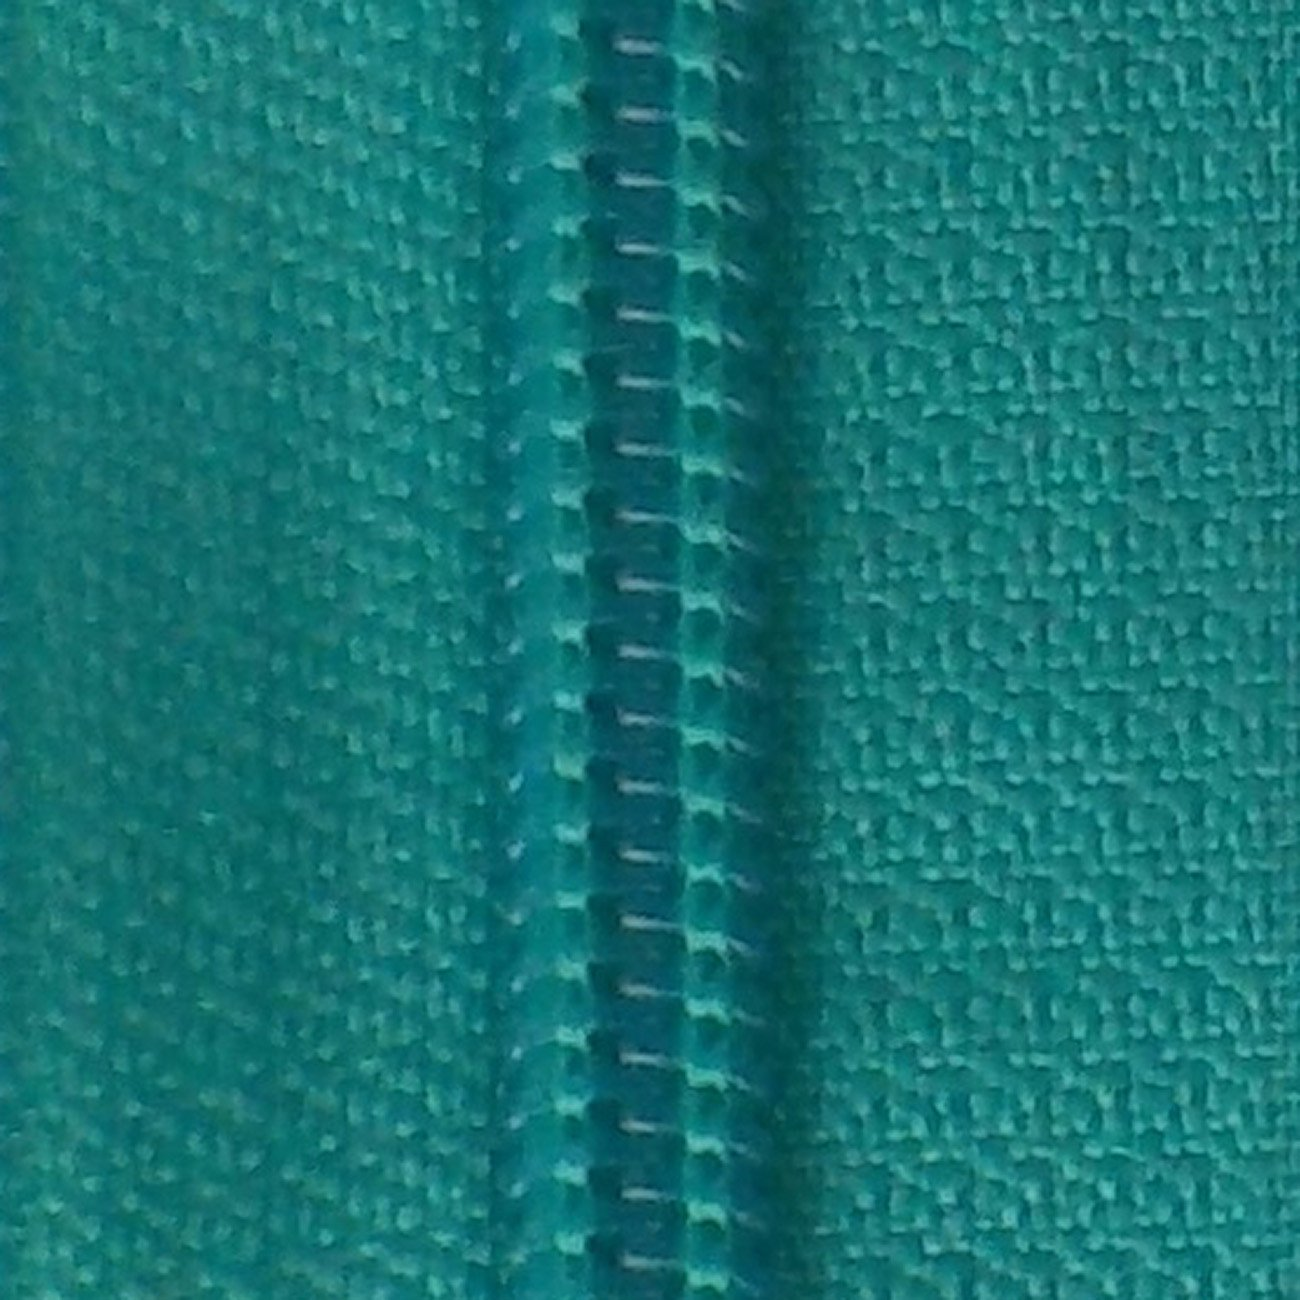 30 Double Pull Non Separating Zipper Turquoise